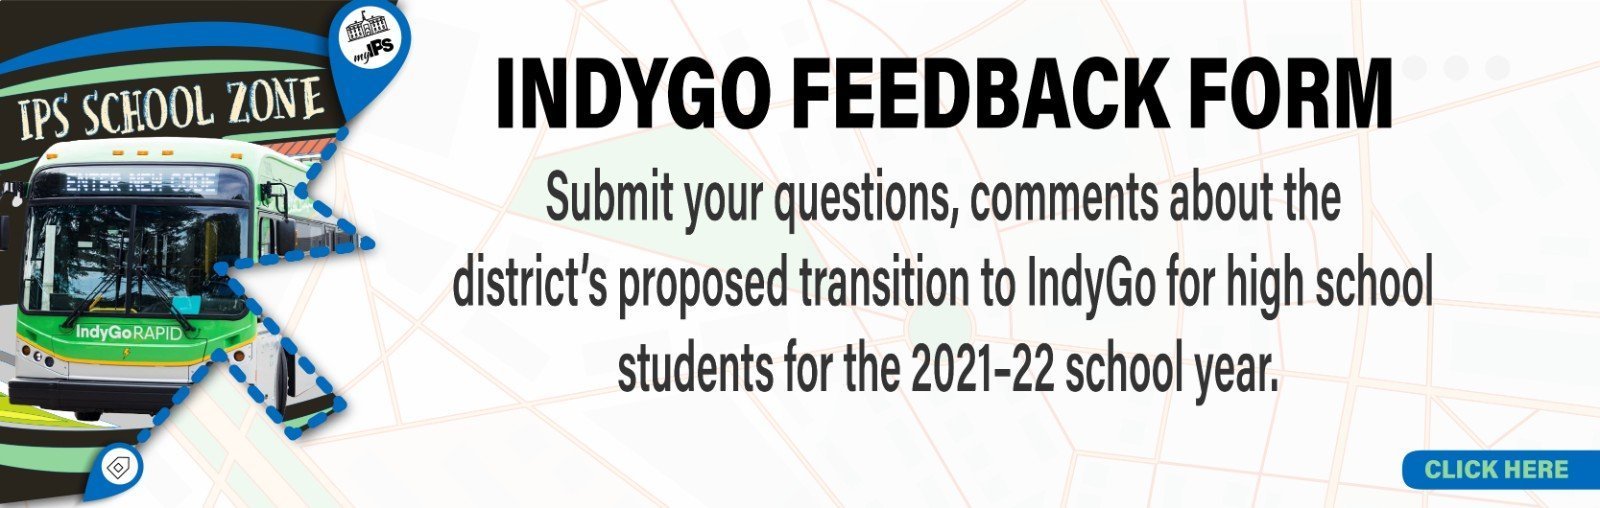 Indygo Feedback form